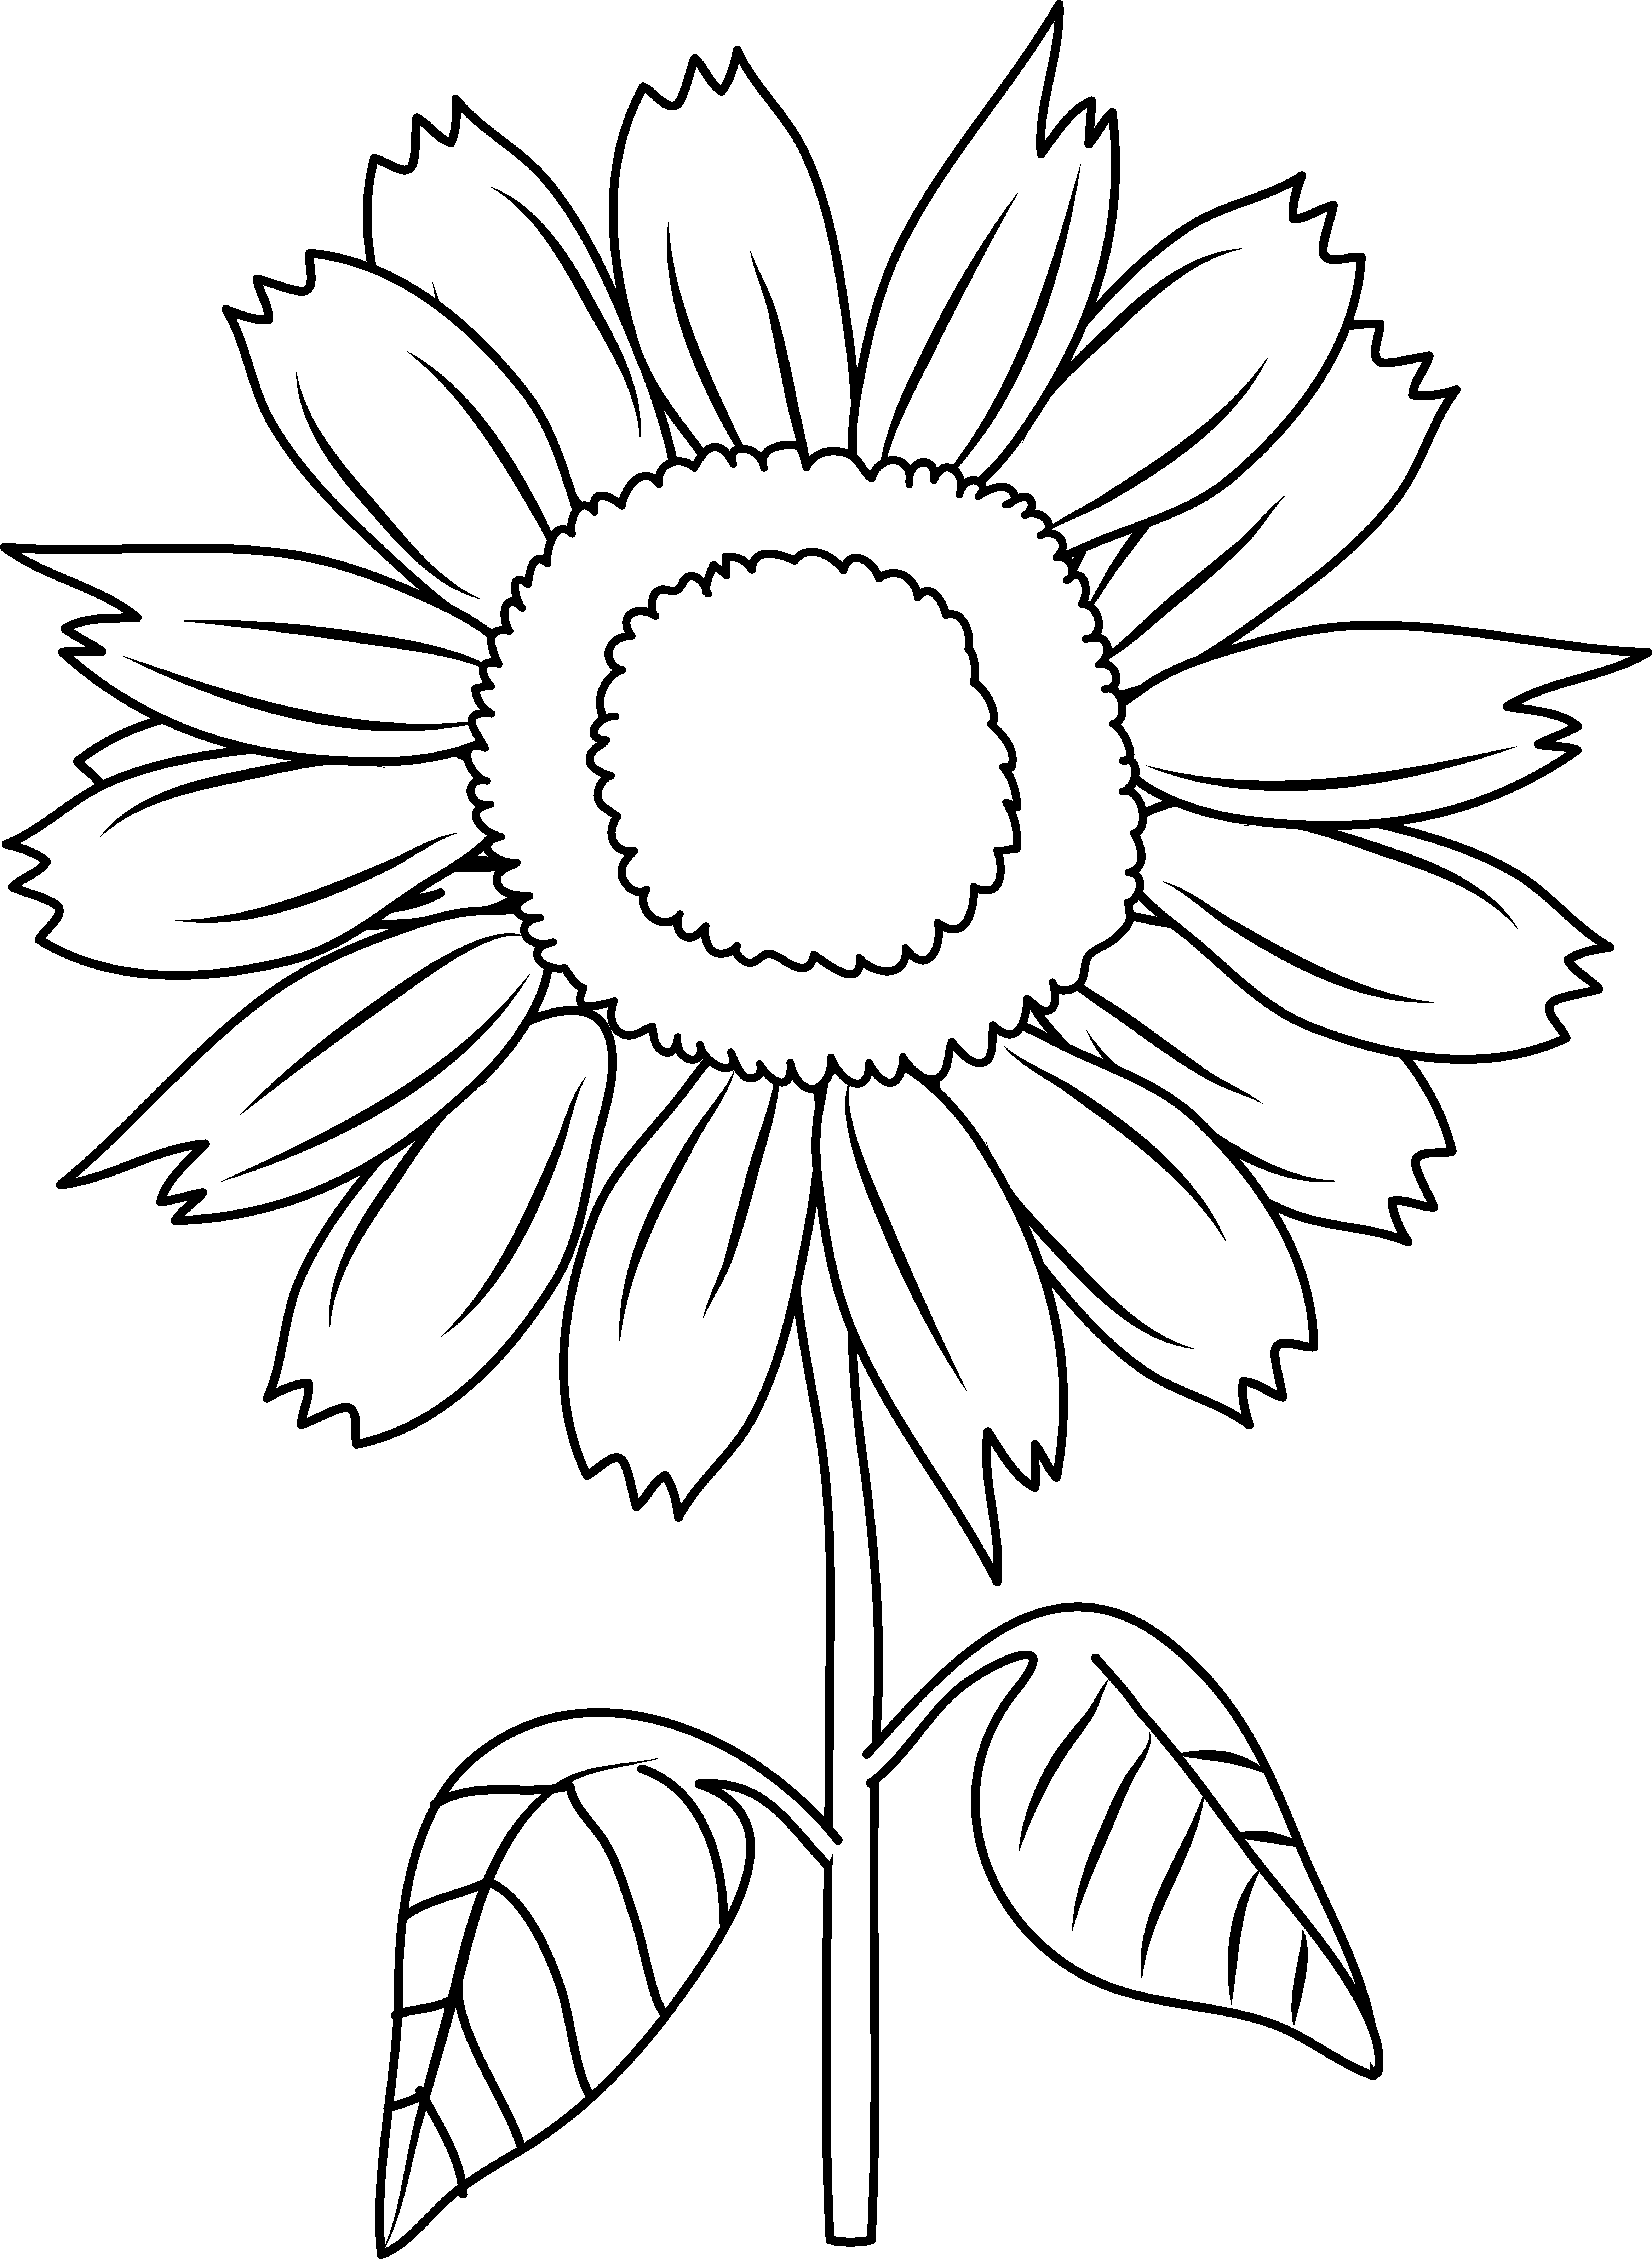 Free color book clipart sunflower image transparent Sunflower Black And White Drawing at GetDrawings.com | Free for ... image transparent